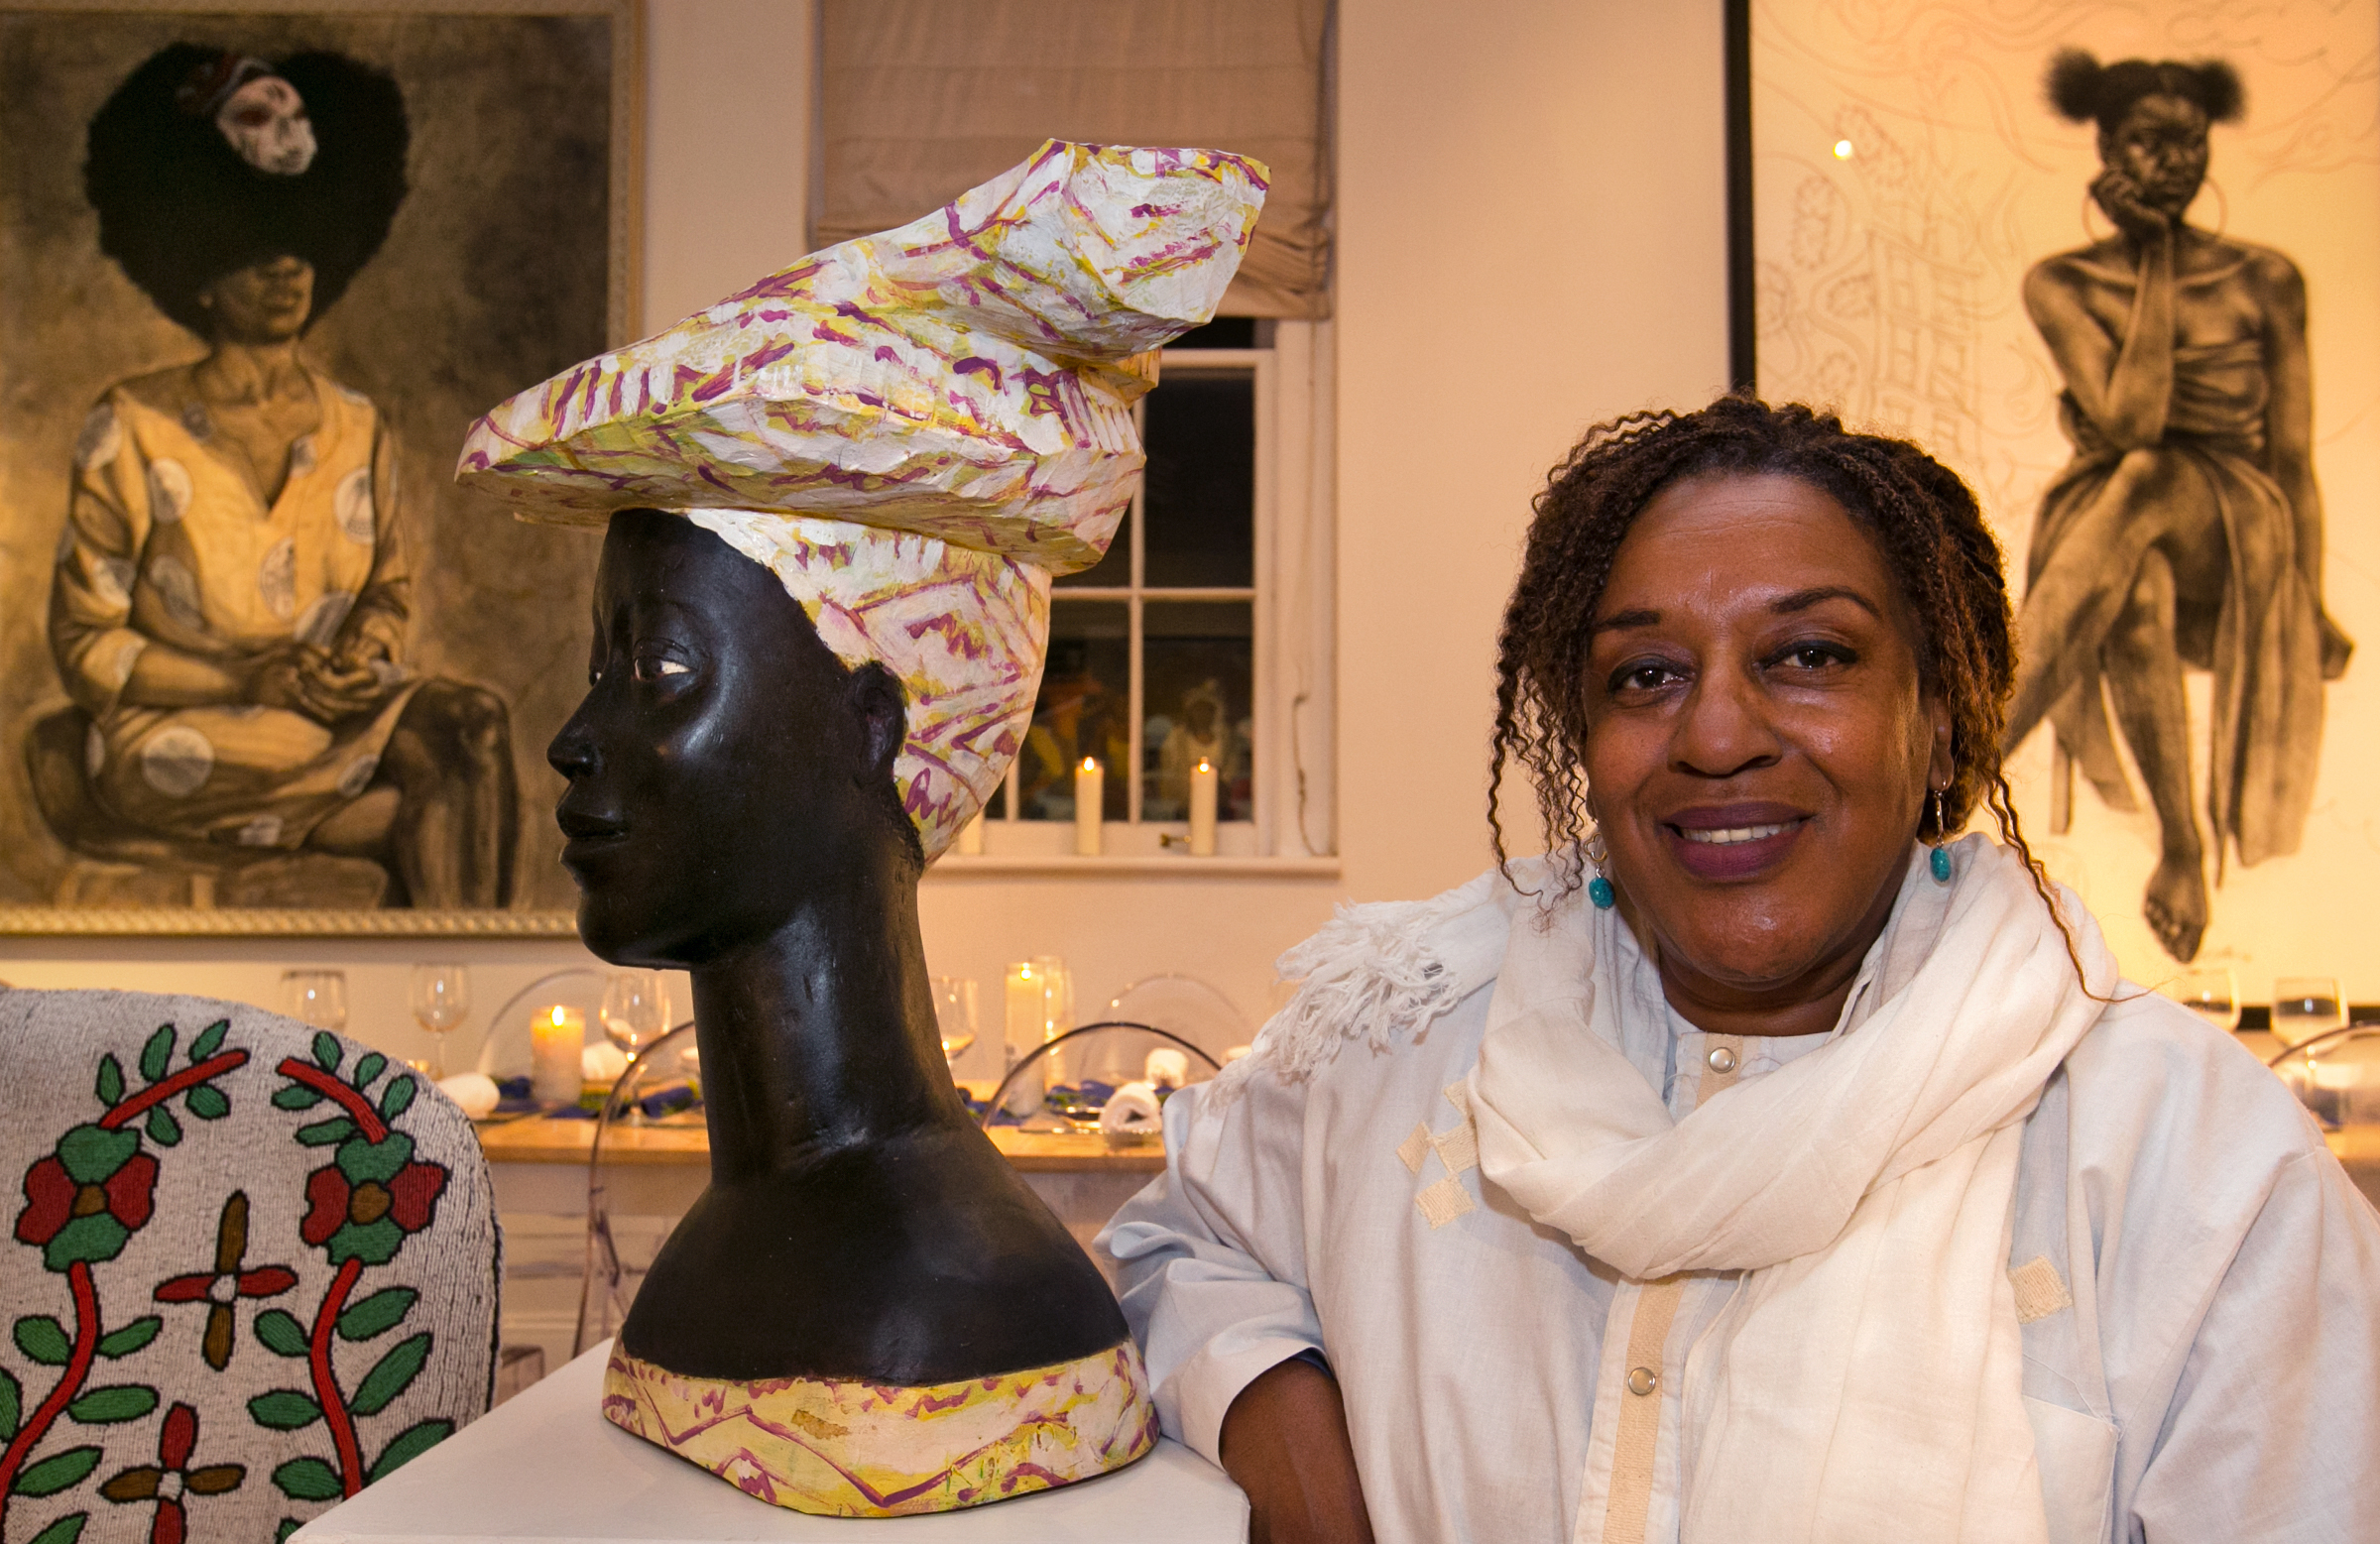 """CCH Pounder, an actress who plays Dr. Loretta Wade on """"NCIS New Orleans"""" shows off her condo and her extensive art collection, Friday, January 20, 2017. (Photo by Ted Jackson, NOLA.com   The Times-Picayune)"""